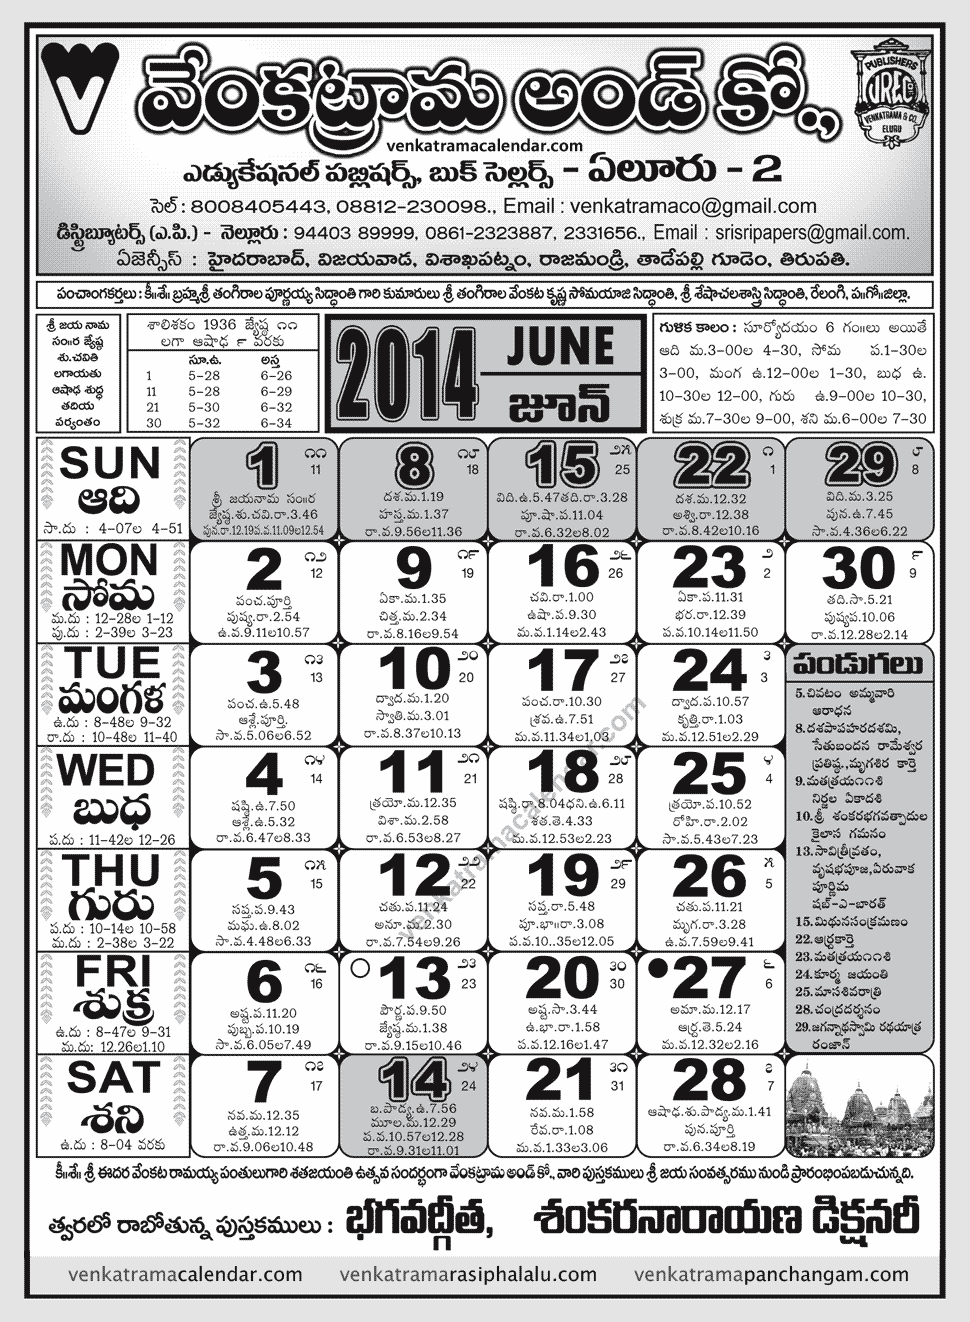 June Telugu Calendar : Venkatrama co calendar june telugu